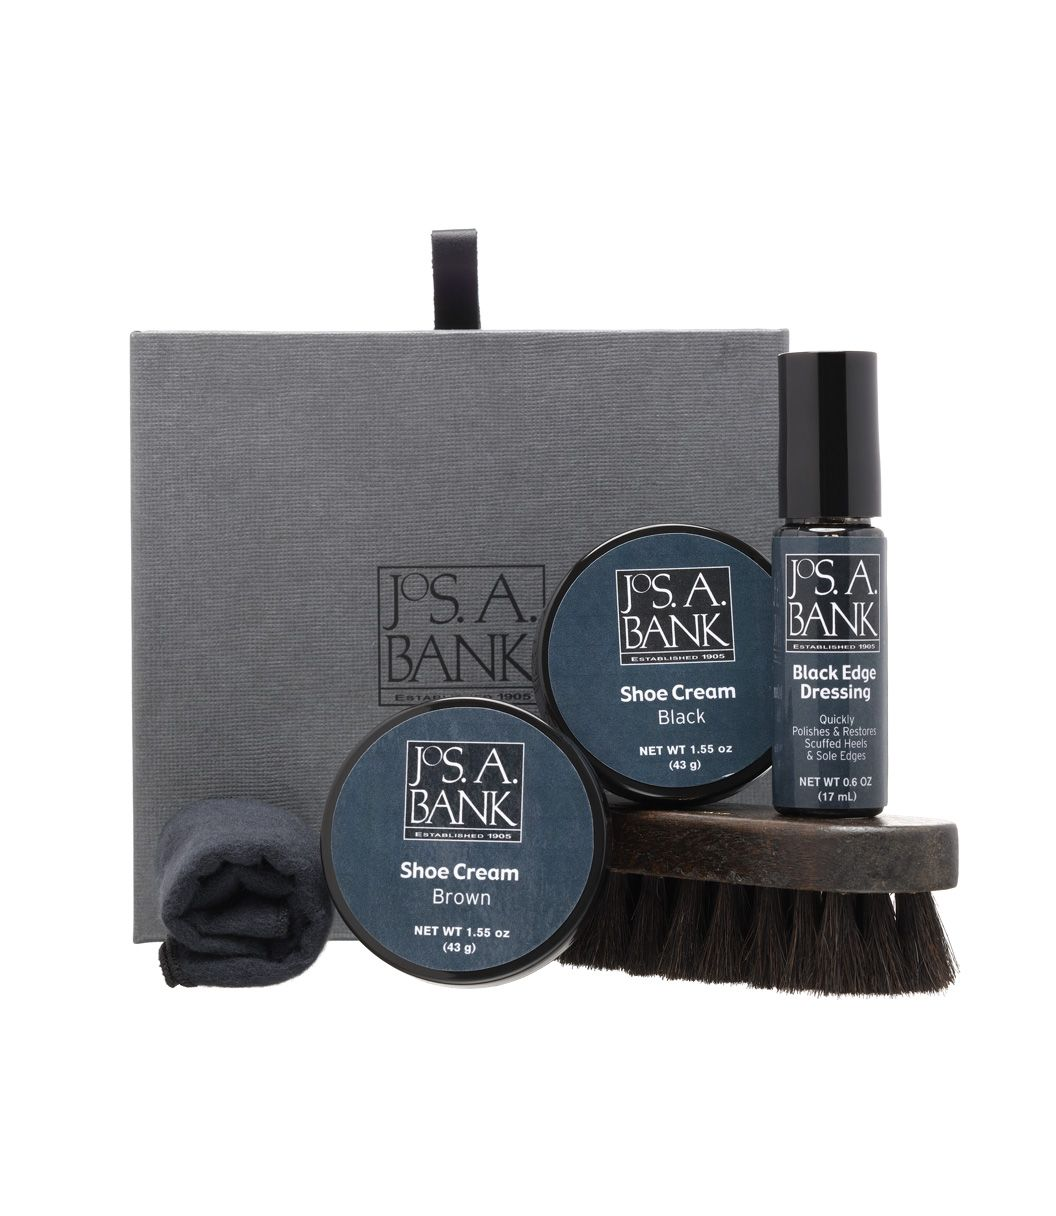 Jos. A. Bank Shoe Care Kit (8NT4)